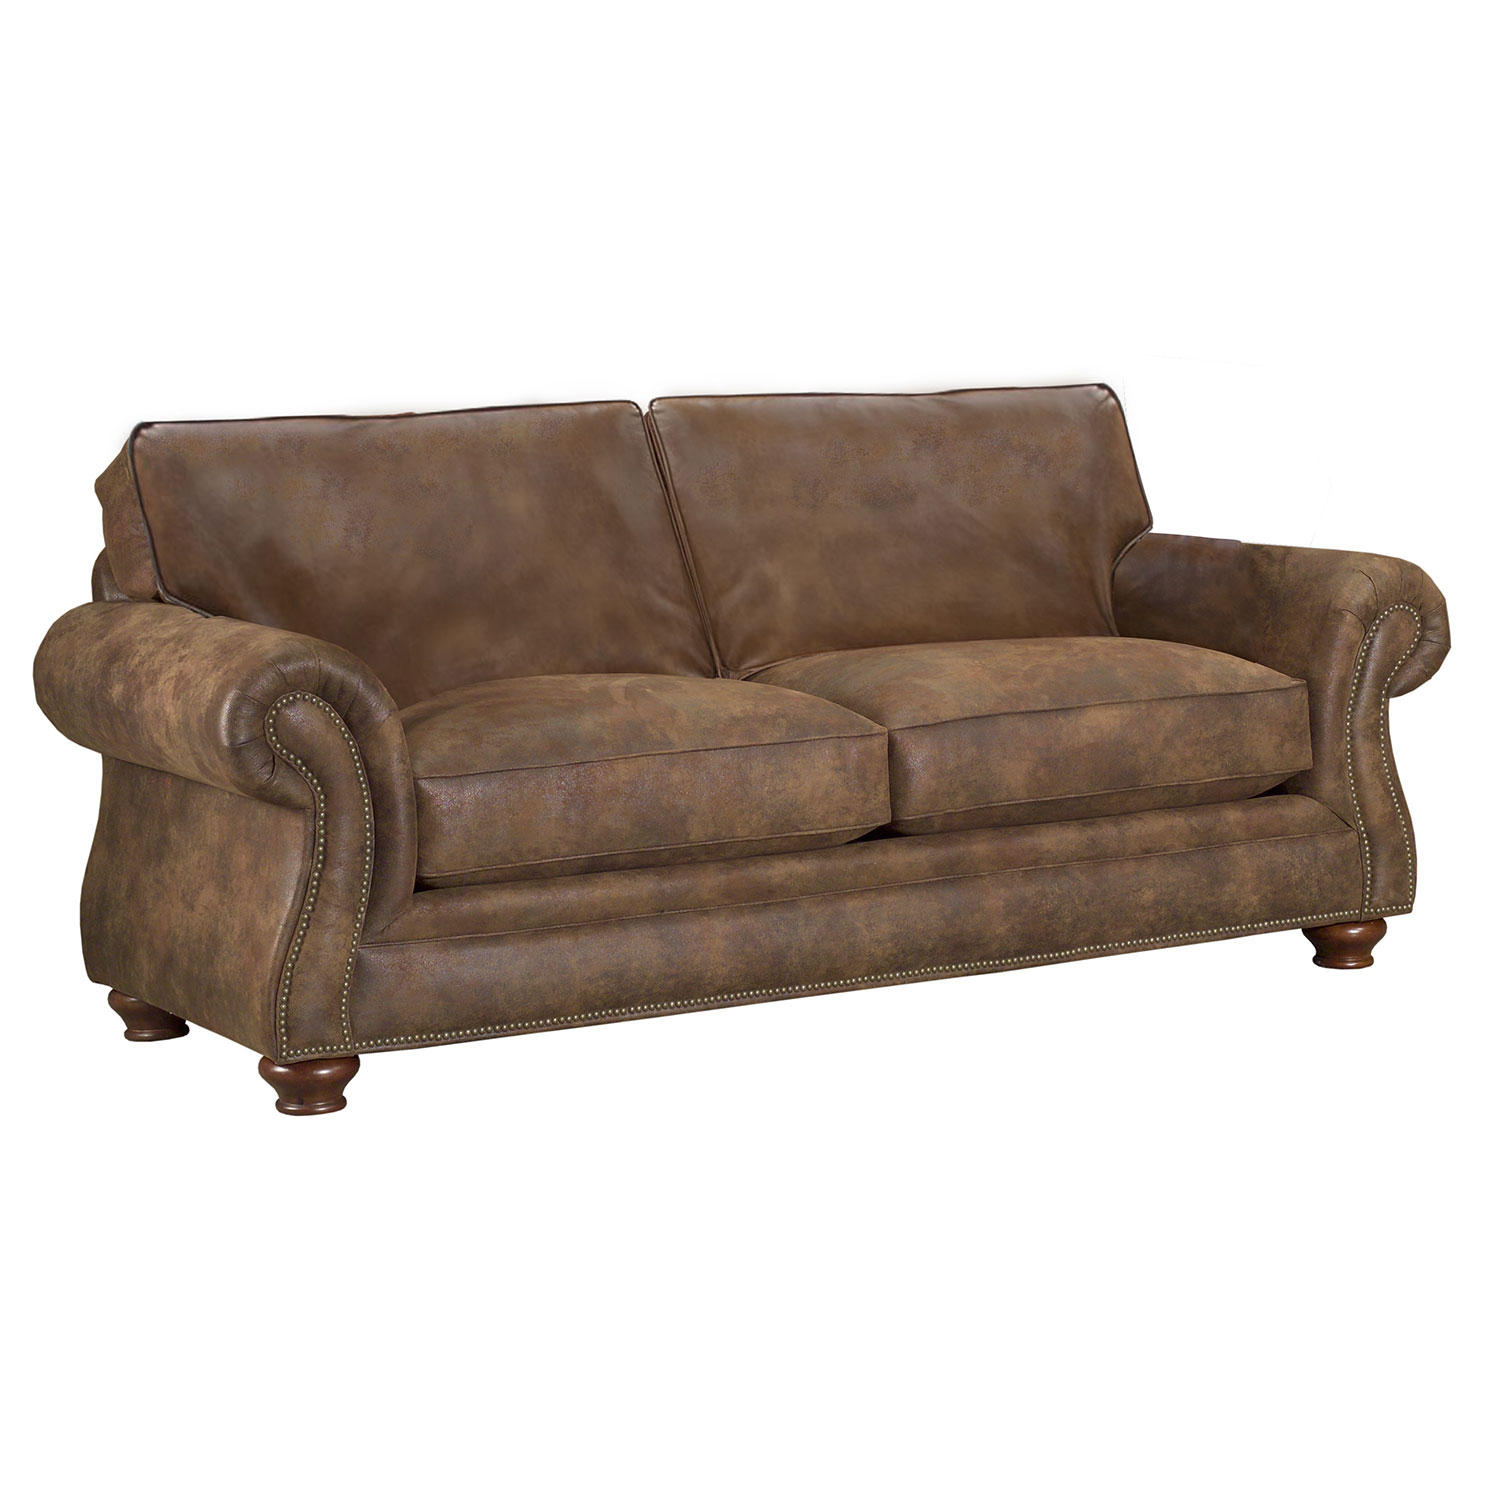 Stone & Leigh Benson Stationary Sofa (5081-3Q)